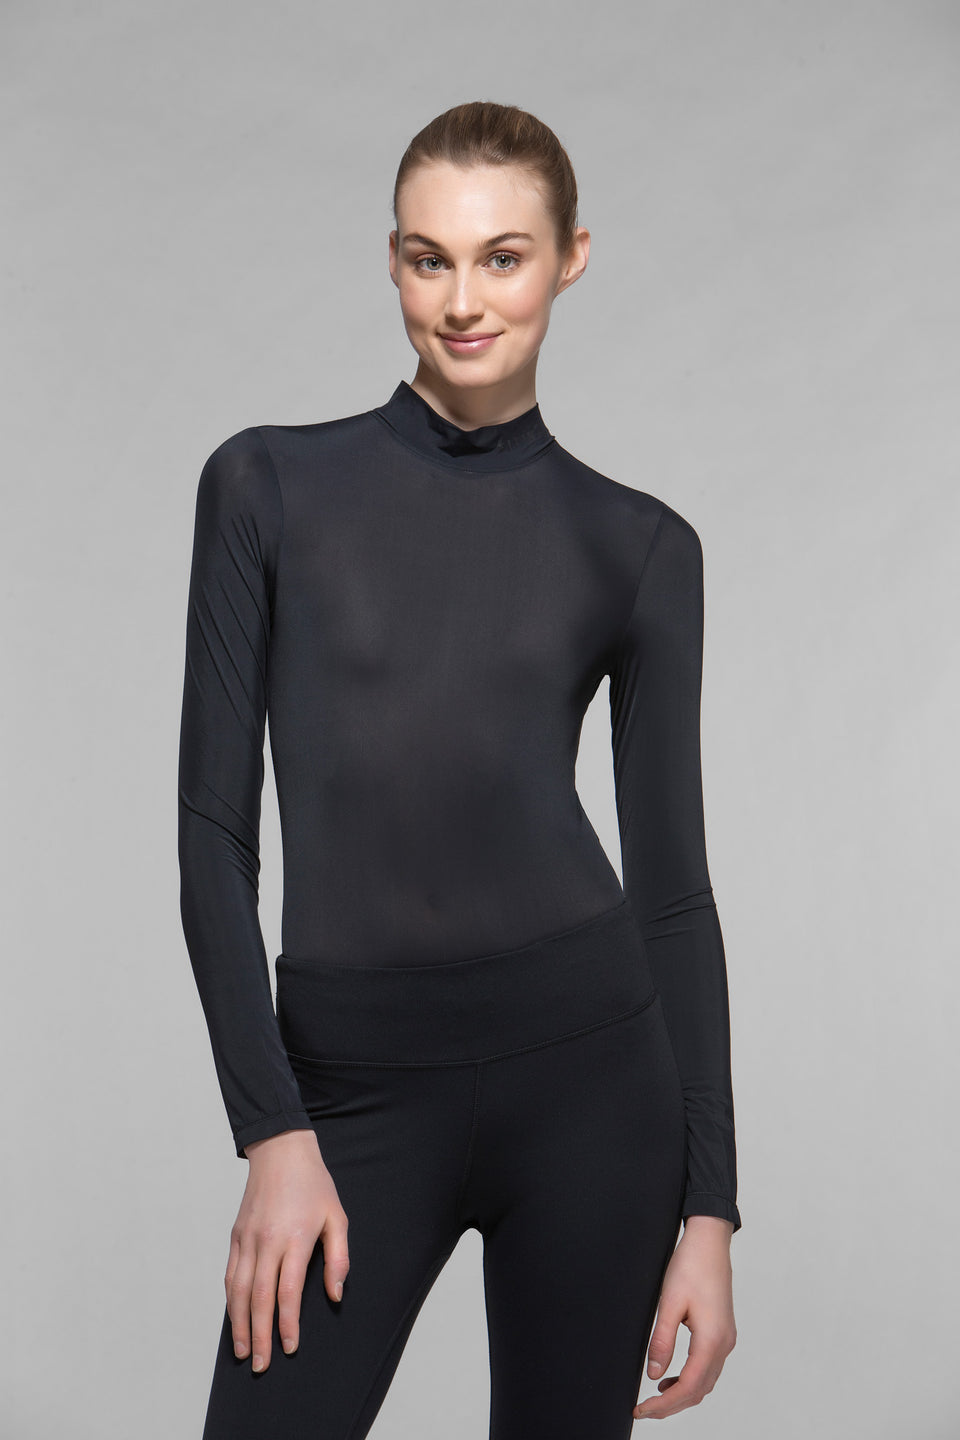 Etienne Long Sleeve Bodysuit